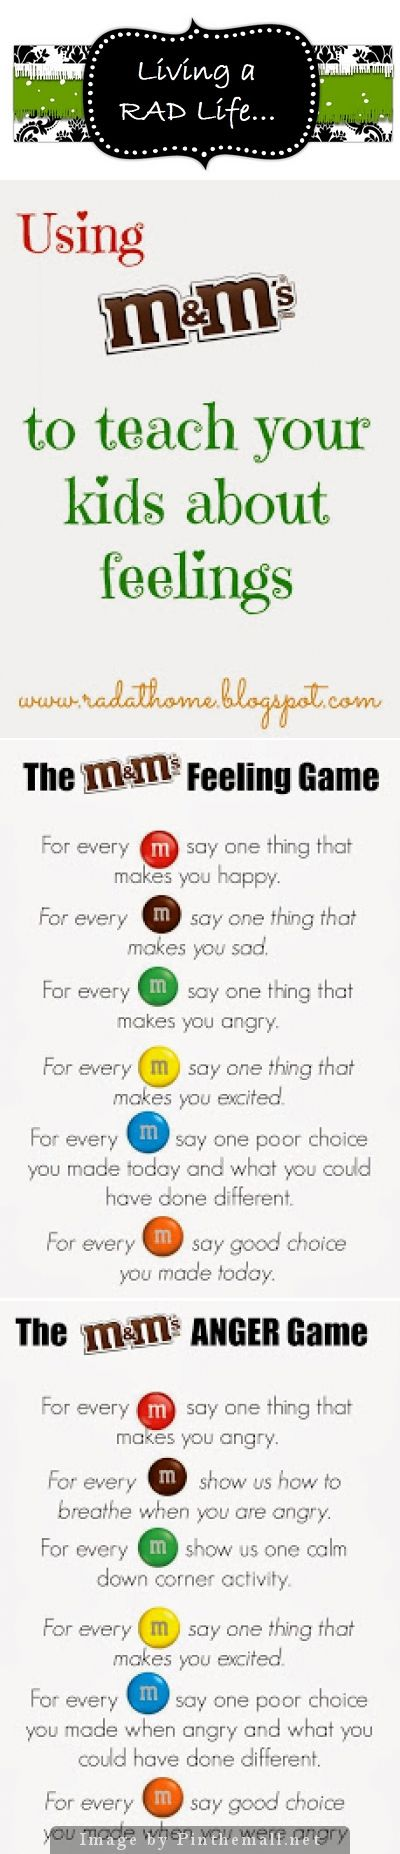 M&Ms Feelings Games- I've made two versions of the M&M Game, the first one focuses on general feelings and the second focuses on feeling Angry and calming down. You can either print a game board for the group to share or print mini boards so each person has their own.  I laminated mine so we can use them again without getting them ruined.  Each person will need a fun size bag of M&M's or an assortment of 10 or so M&M's.